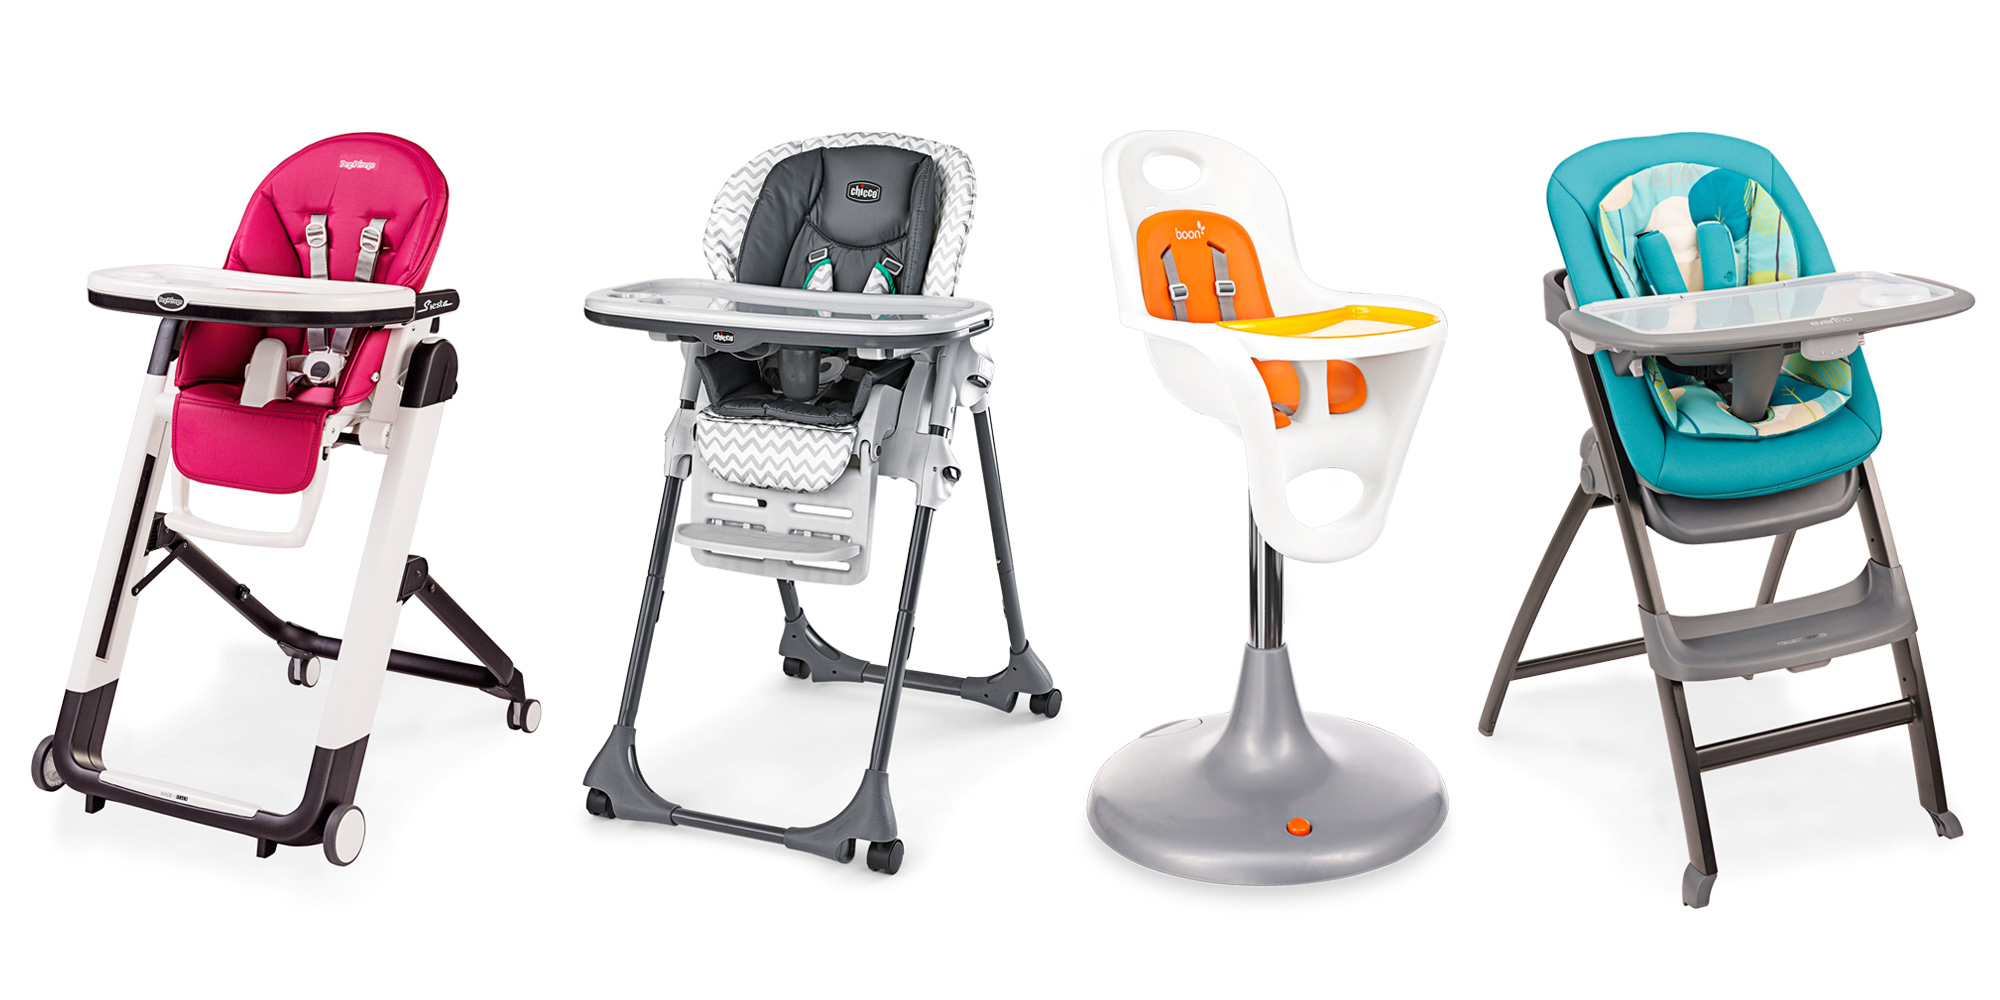 best high chair easy to clean reclining chairs and ottomans here are the top of 2016